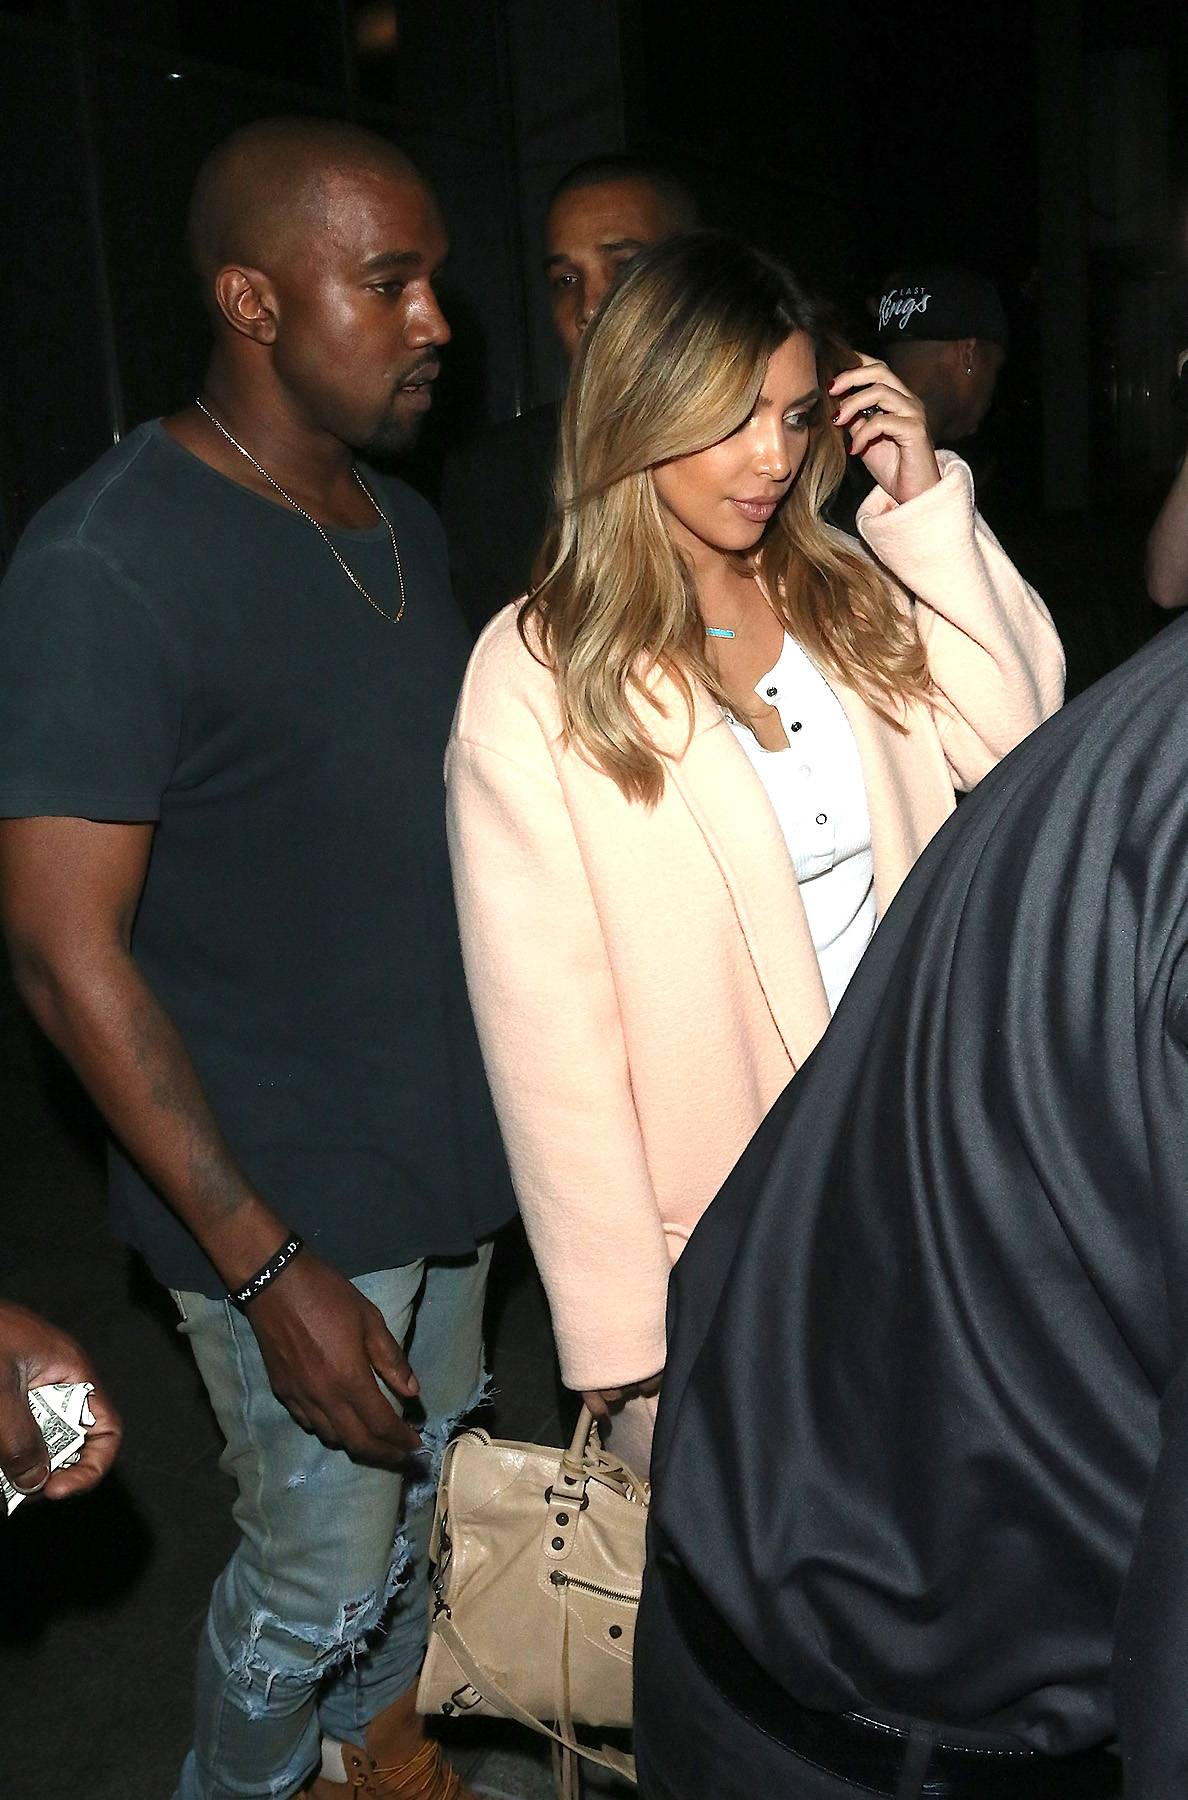 """Rave Reviews - Freedia isn't the only one winning.Kanye Westgave Kim Kardashiana great review and acknowledged that she""""was in a powerful enough situation where she could love me without asking me for money, which is really hard for me to find.?Sounds like 'Ye has found someone whom he trusts. Congrats!(Photo: W.A.B. / Splash News)"""